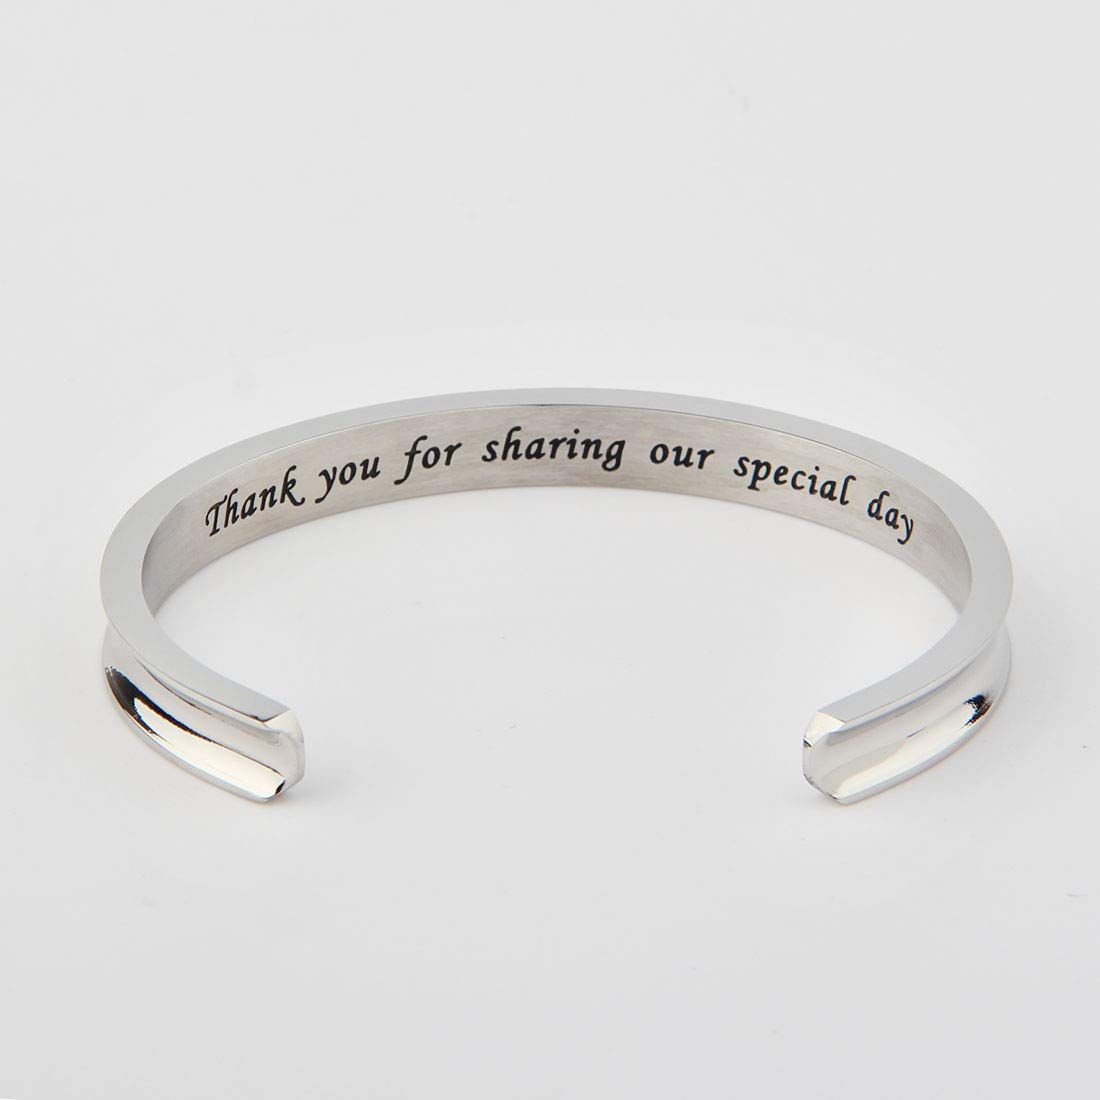 WUSUANED Thank You for Sharing Our Special Day Hair Tie Deep Grooved Cuff Bracelet Wedding Party Favor Gift